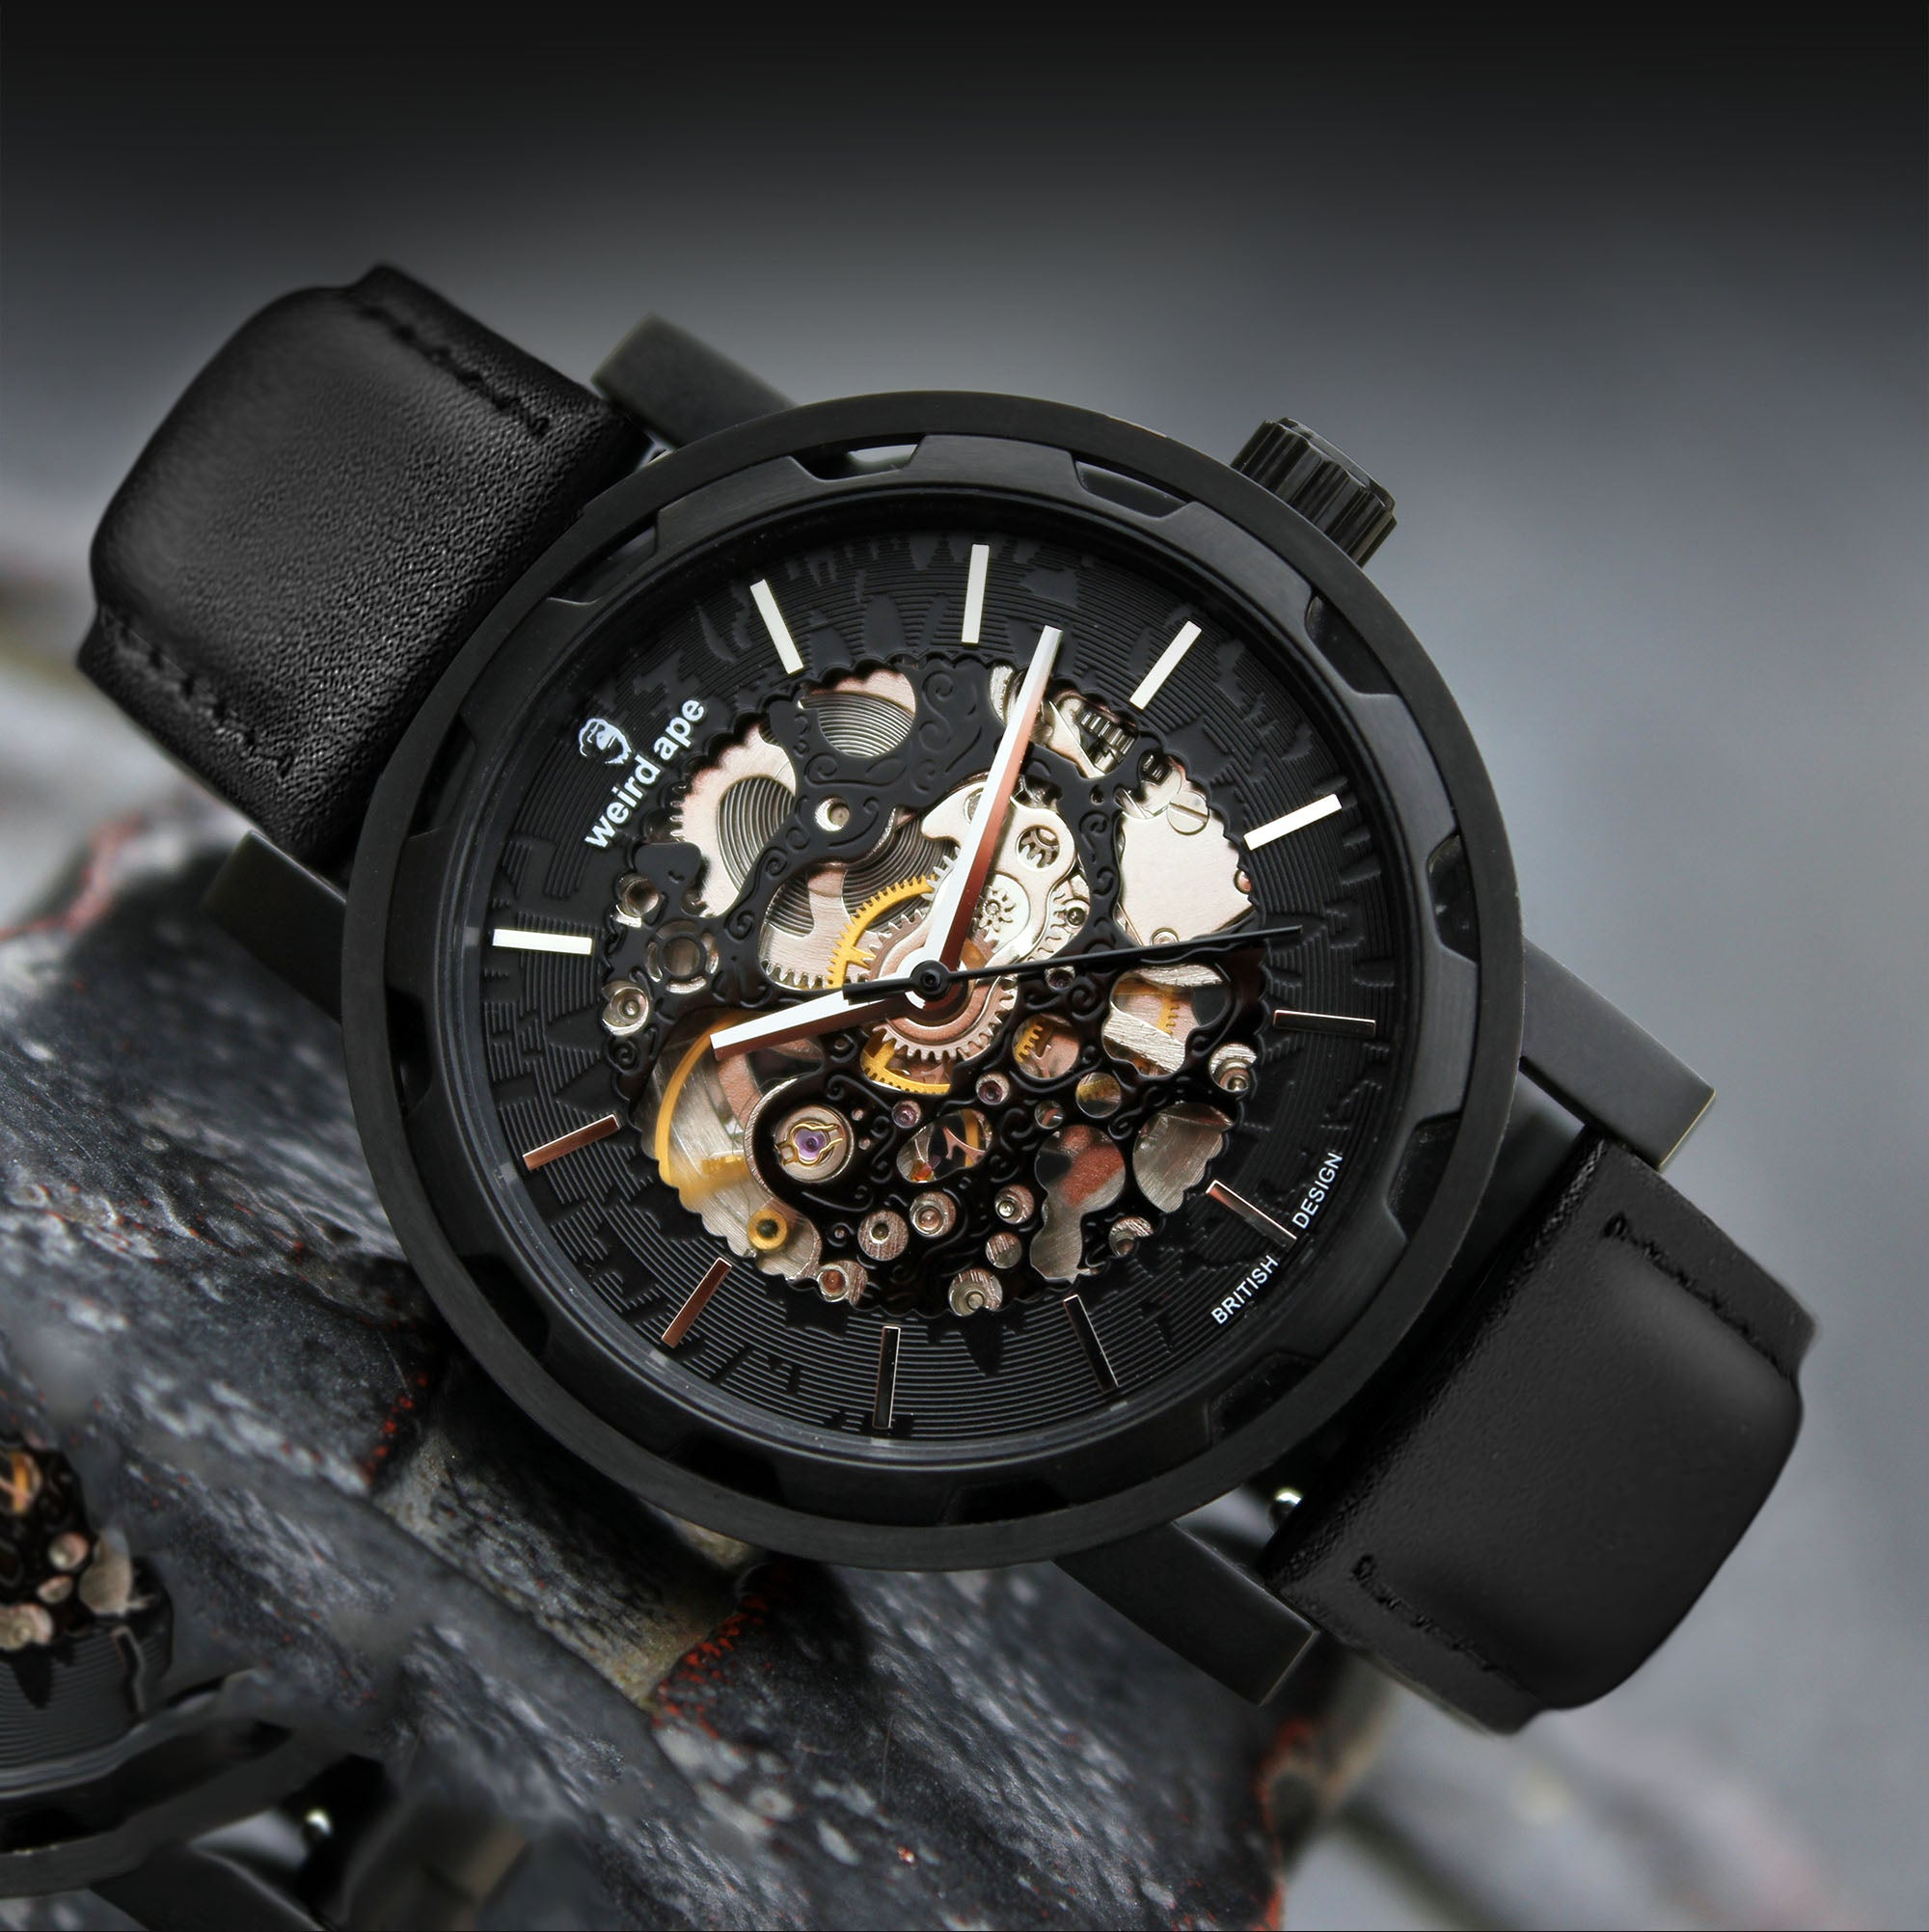 A picture of a black mechanical watch with a black leather strap.